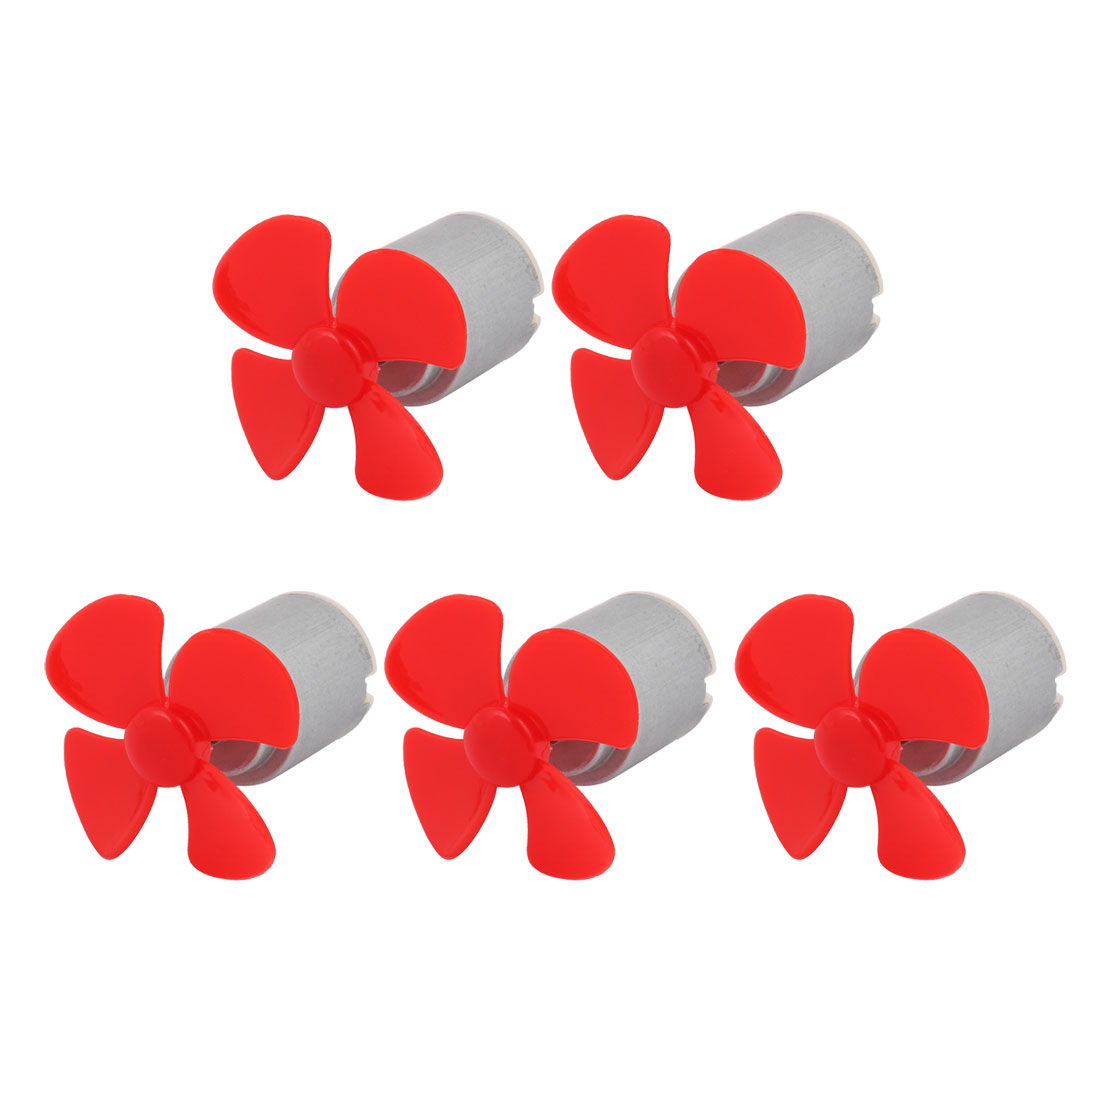 5pcs DC 3V 0.13A 21500RPM Strong Force Motor 4 Vanes 40mm Red Propeller for RC Aircraft